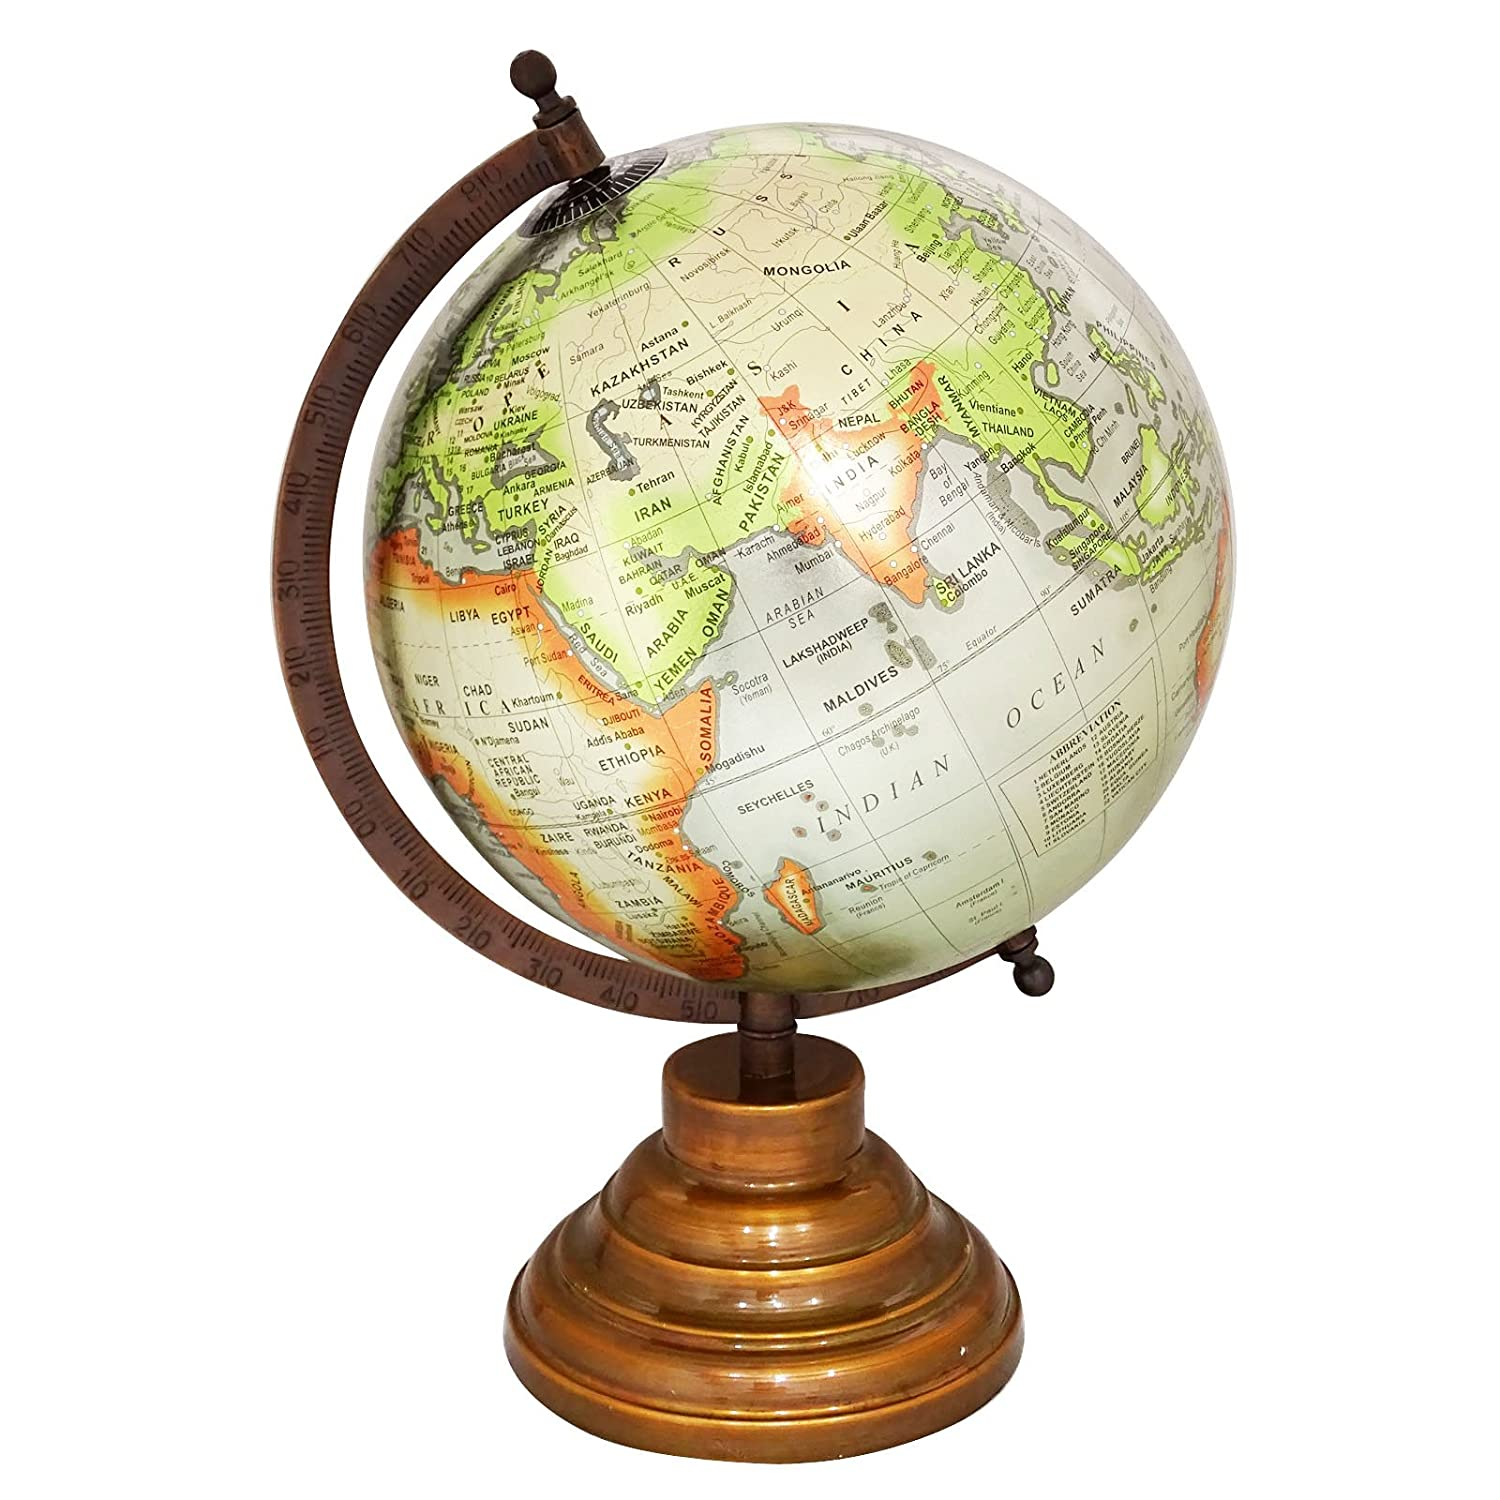 8  grau Unique Antiique Look Geographic Educational Globe with with with Stand - Perfect for Home, Office & Classroom By Globes Hub caeab9